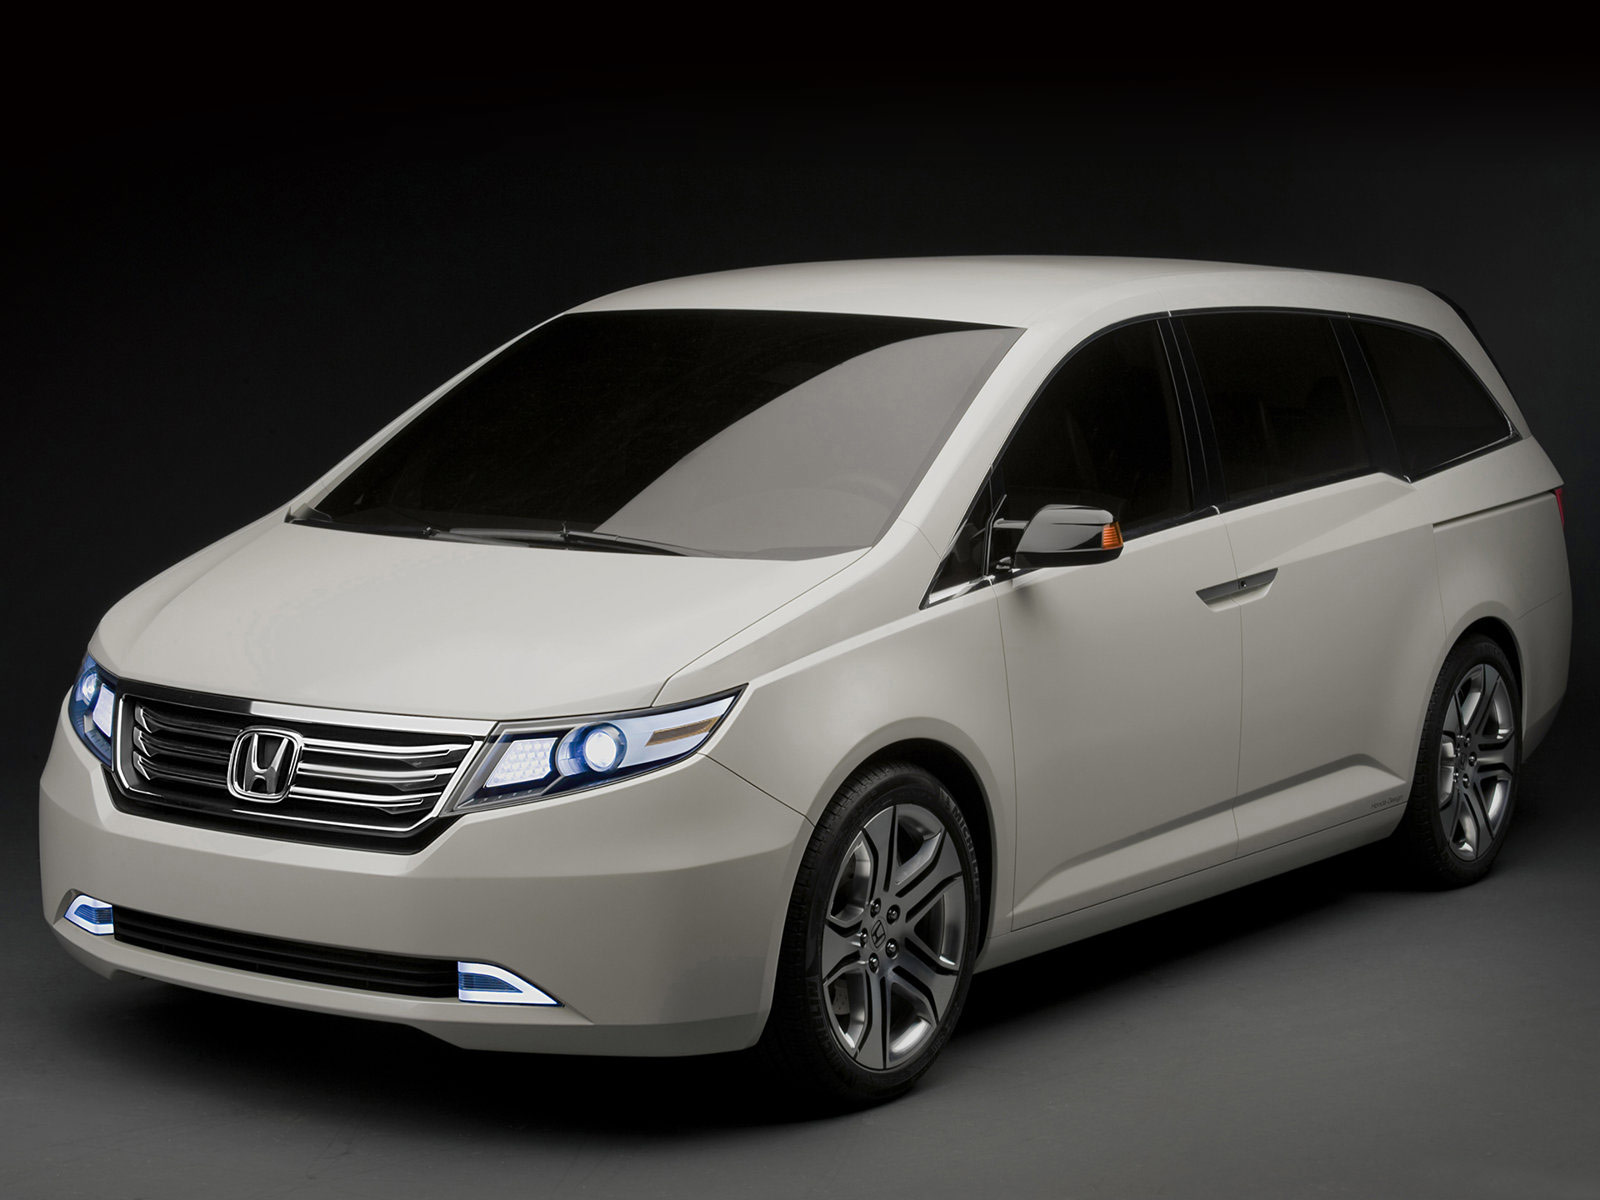 Honda Van 2013 photo - 3